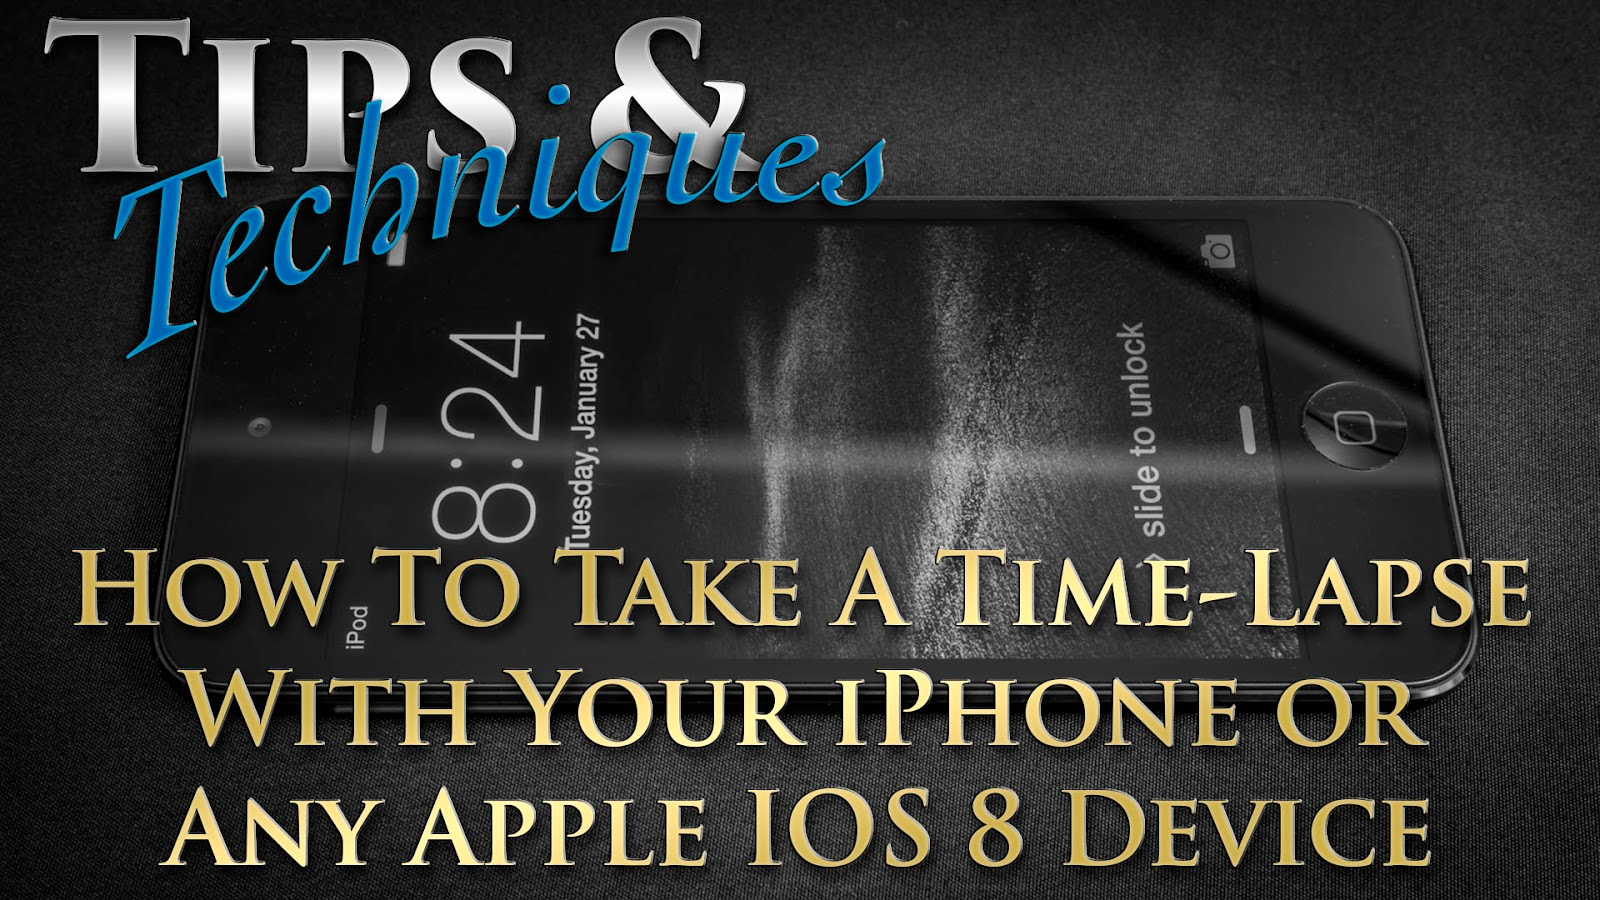 Learn How To Take A Time Lapse With Your iPhone Or Any Apple IOS 8 Device